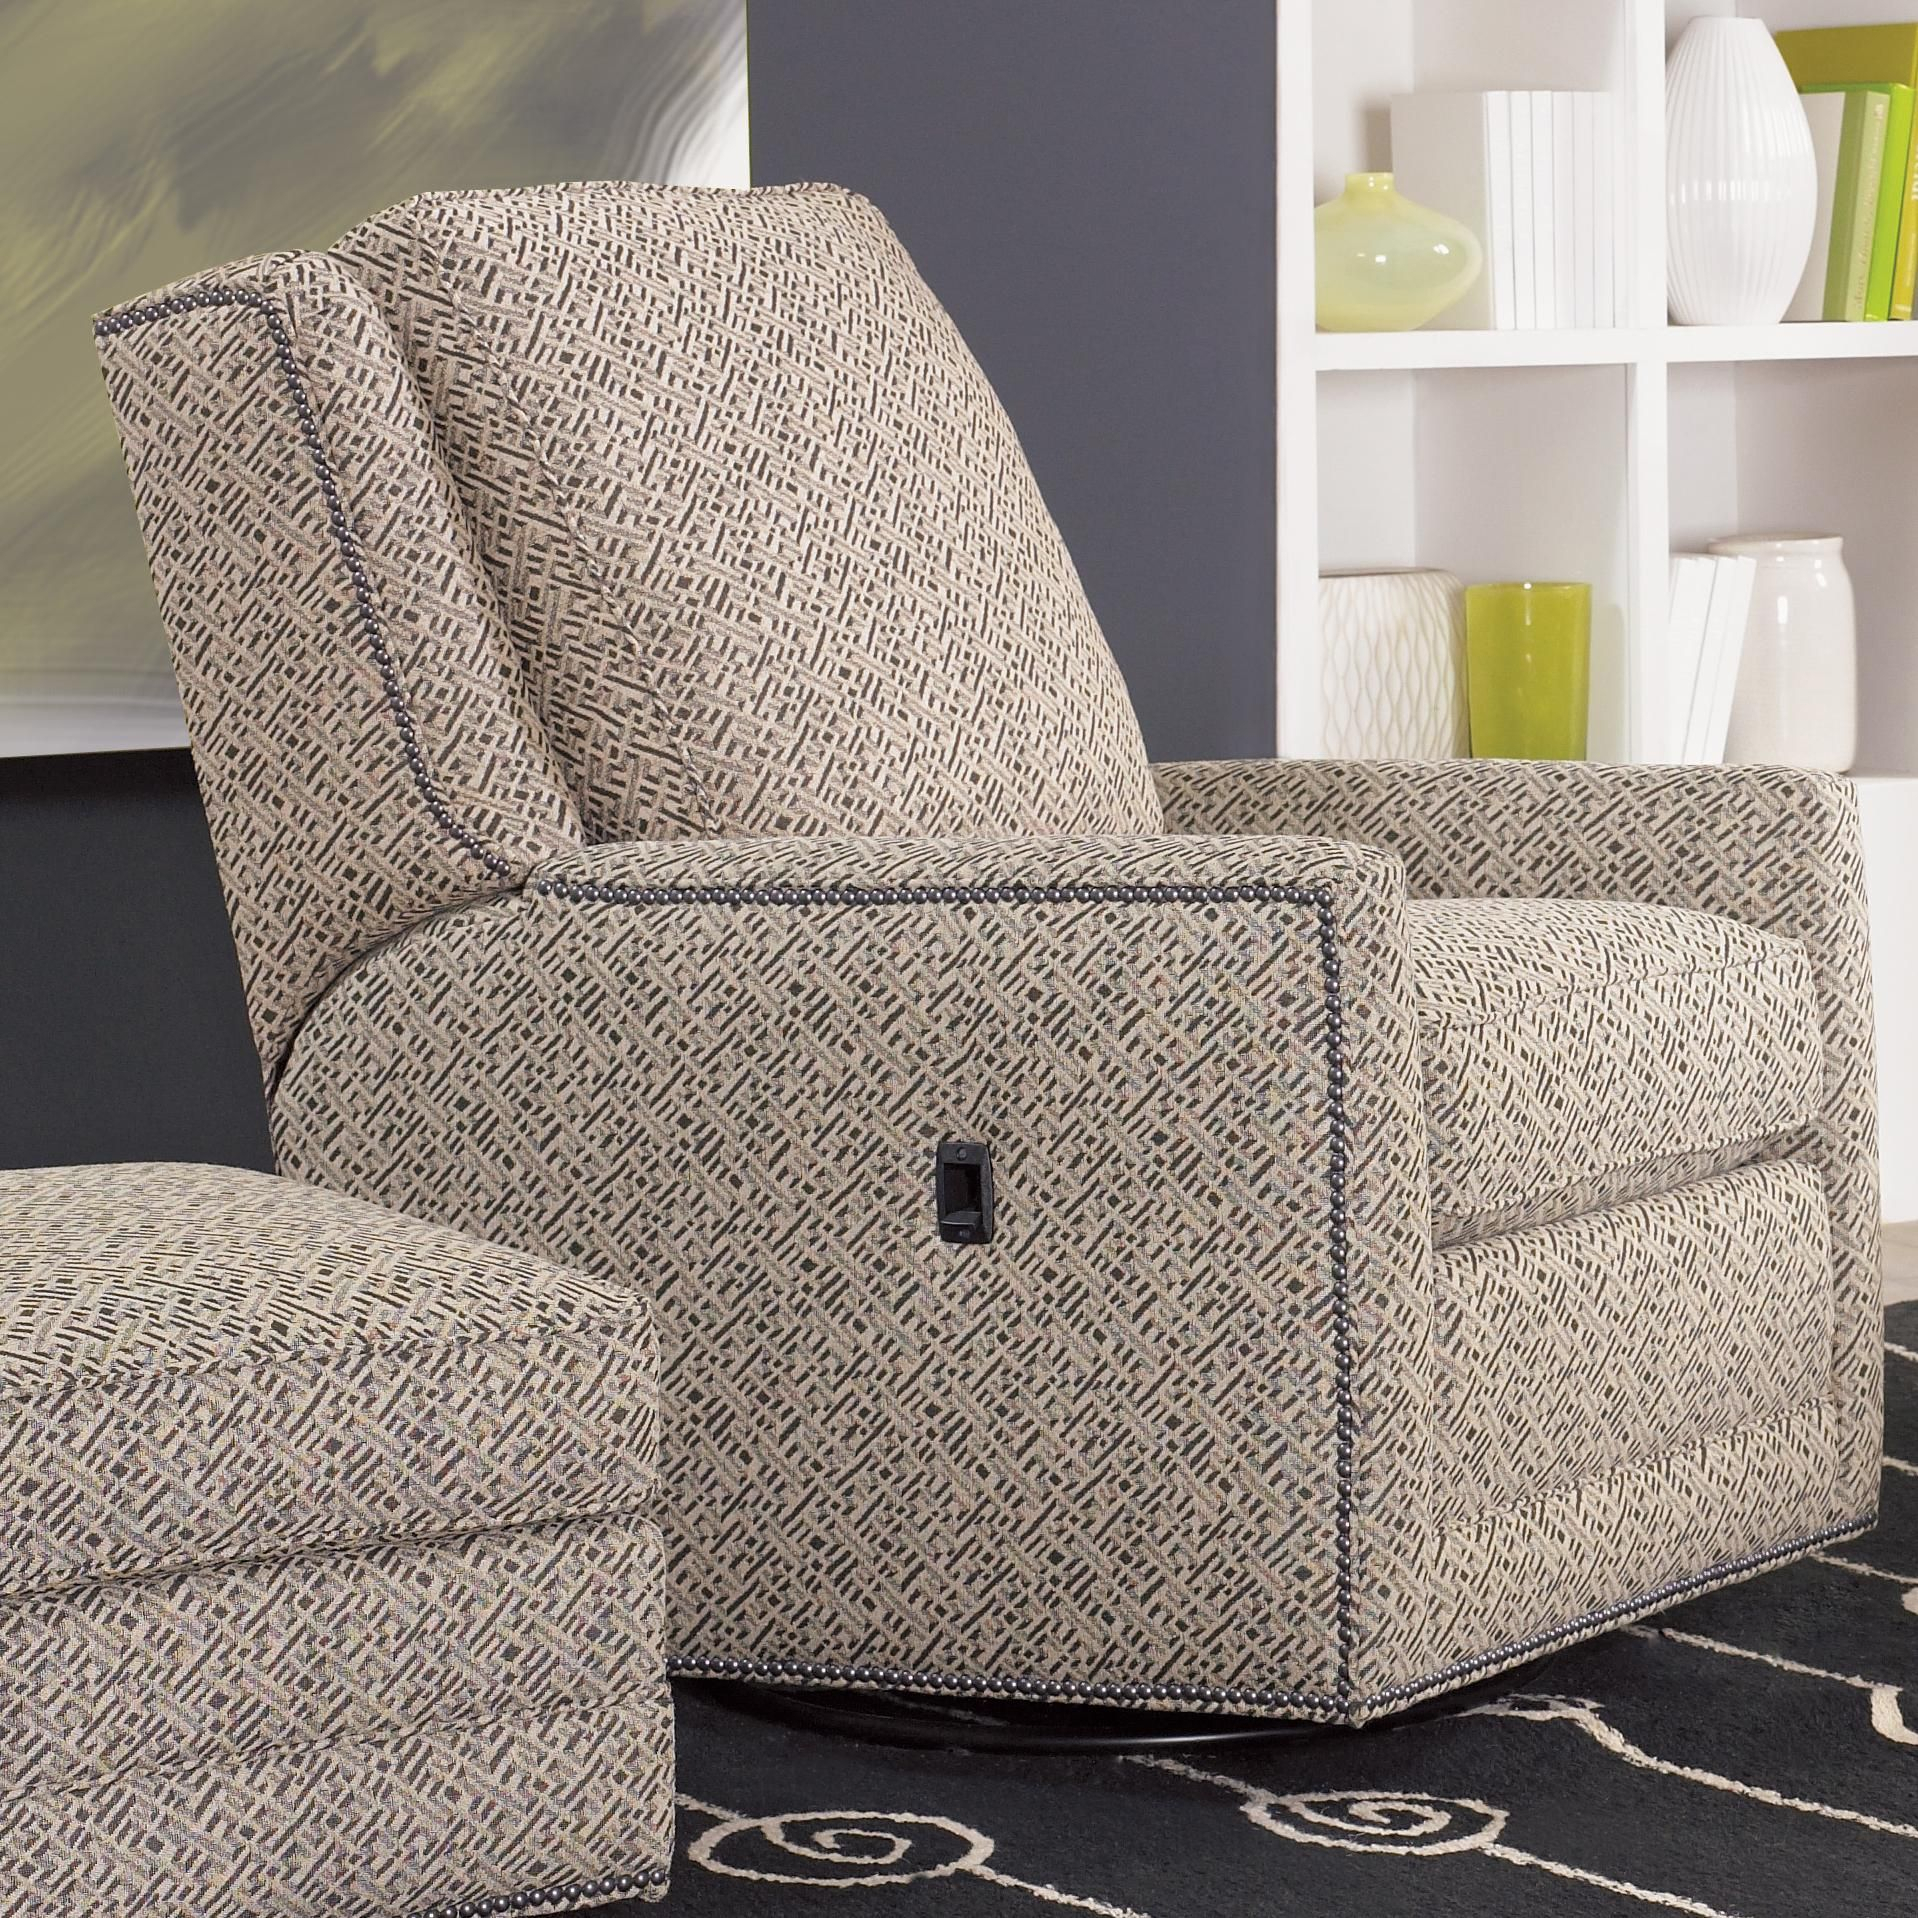 Recliners Swivel Tilt Back Chairsmith Brothers   Recliner In Bailey Linen Flare Arm Wing Skirted Swivel Gliders (Image 23 of 25)